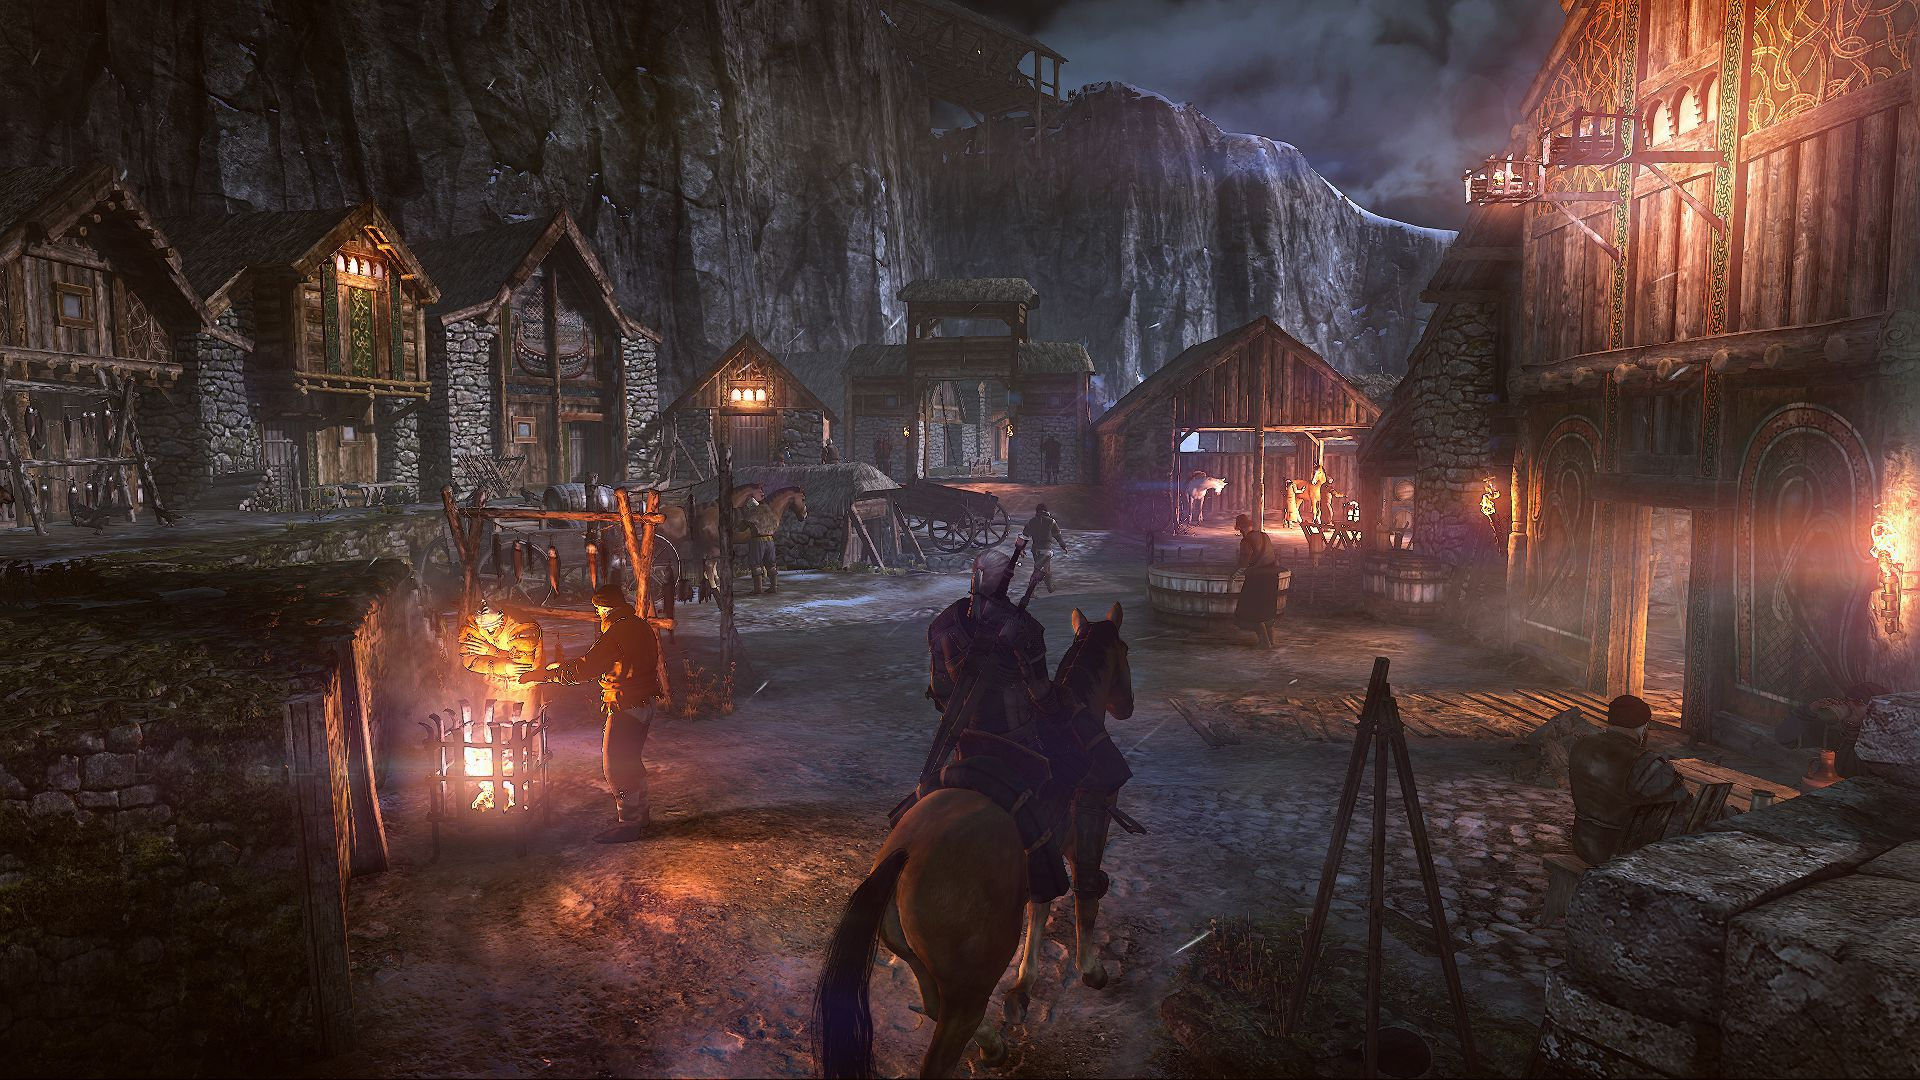 6297_the_witcher_3_wild_hunt_town